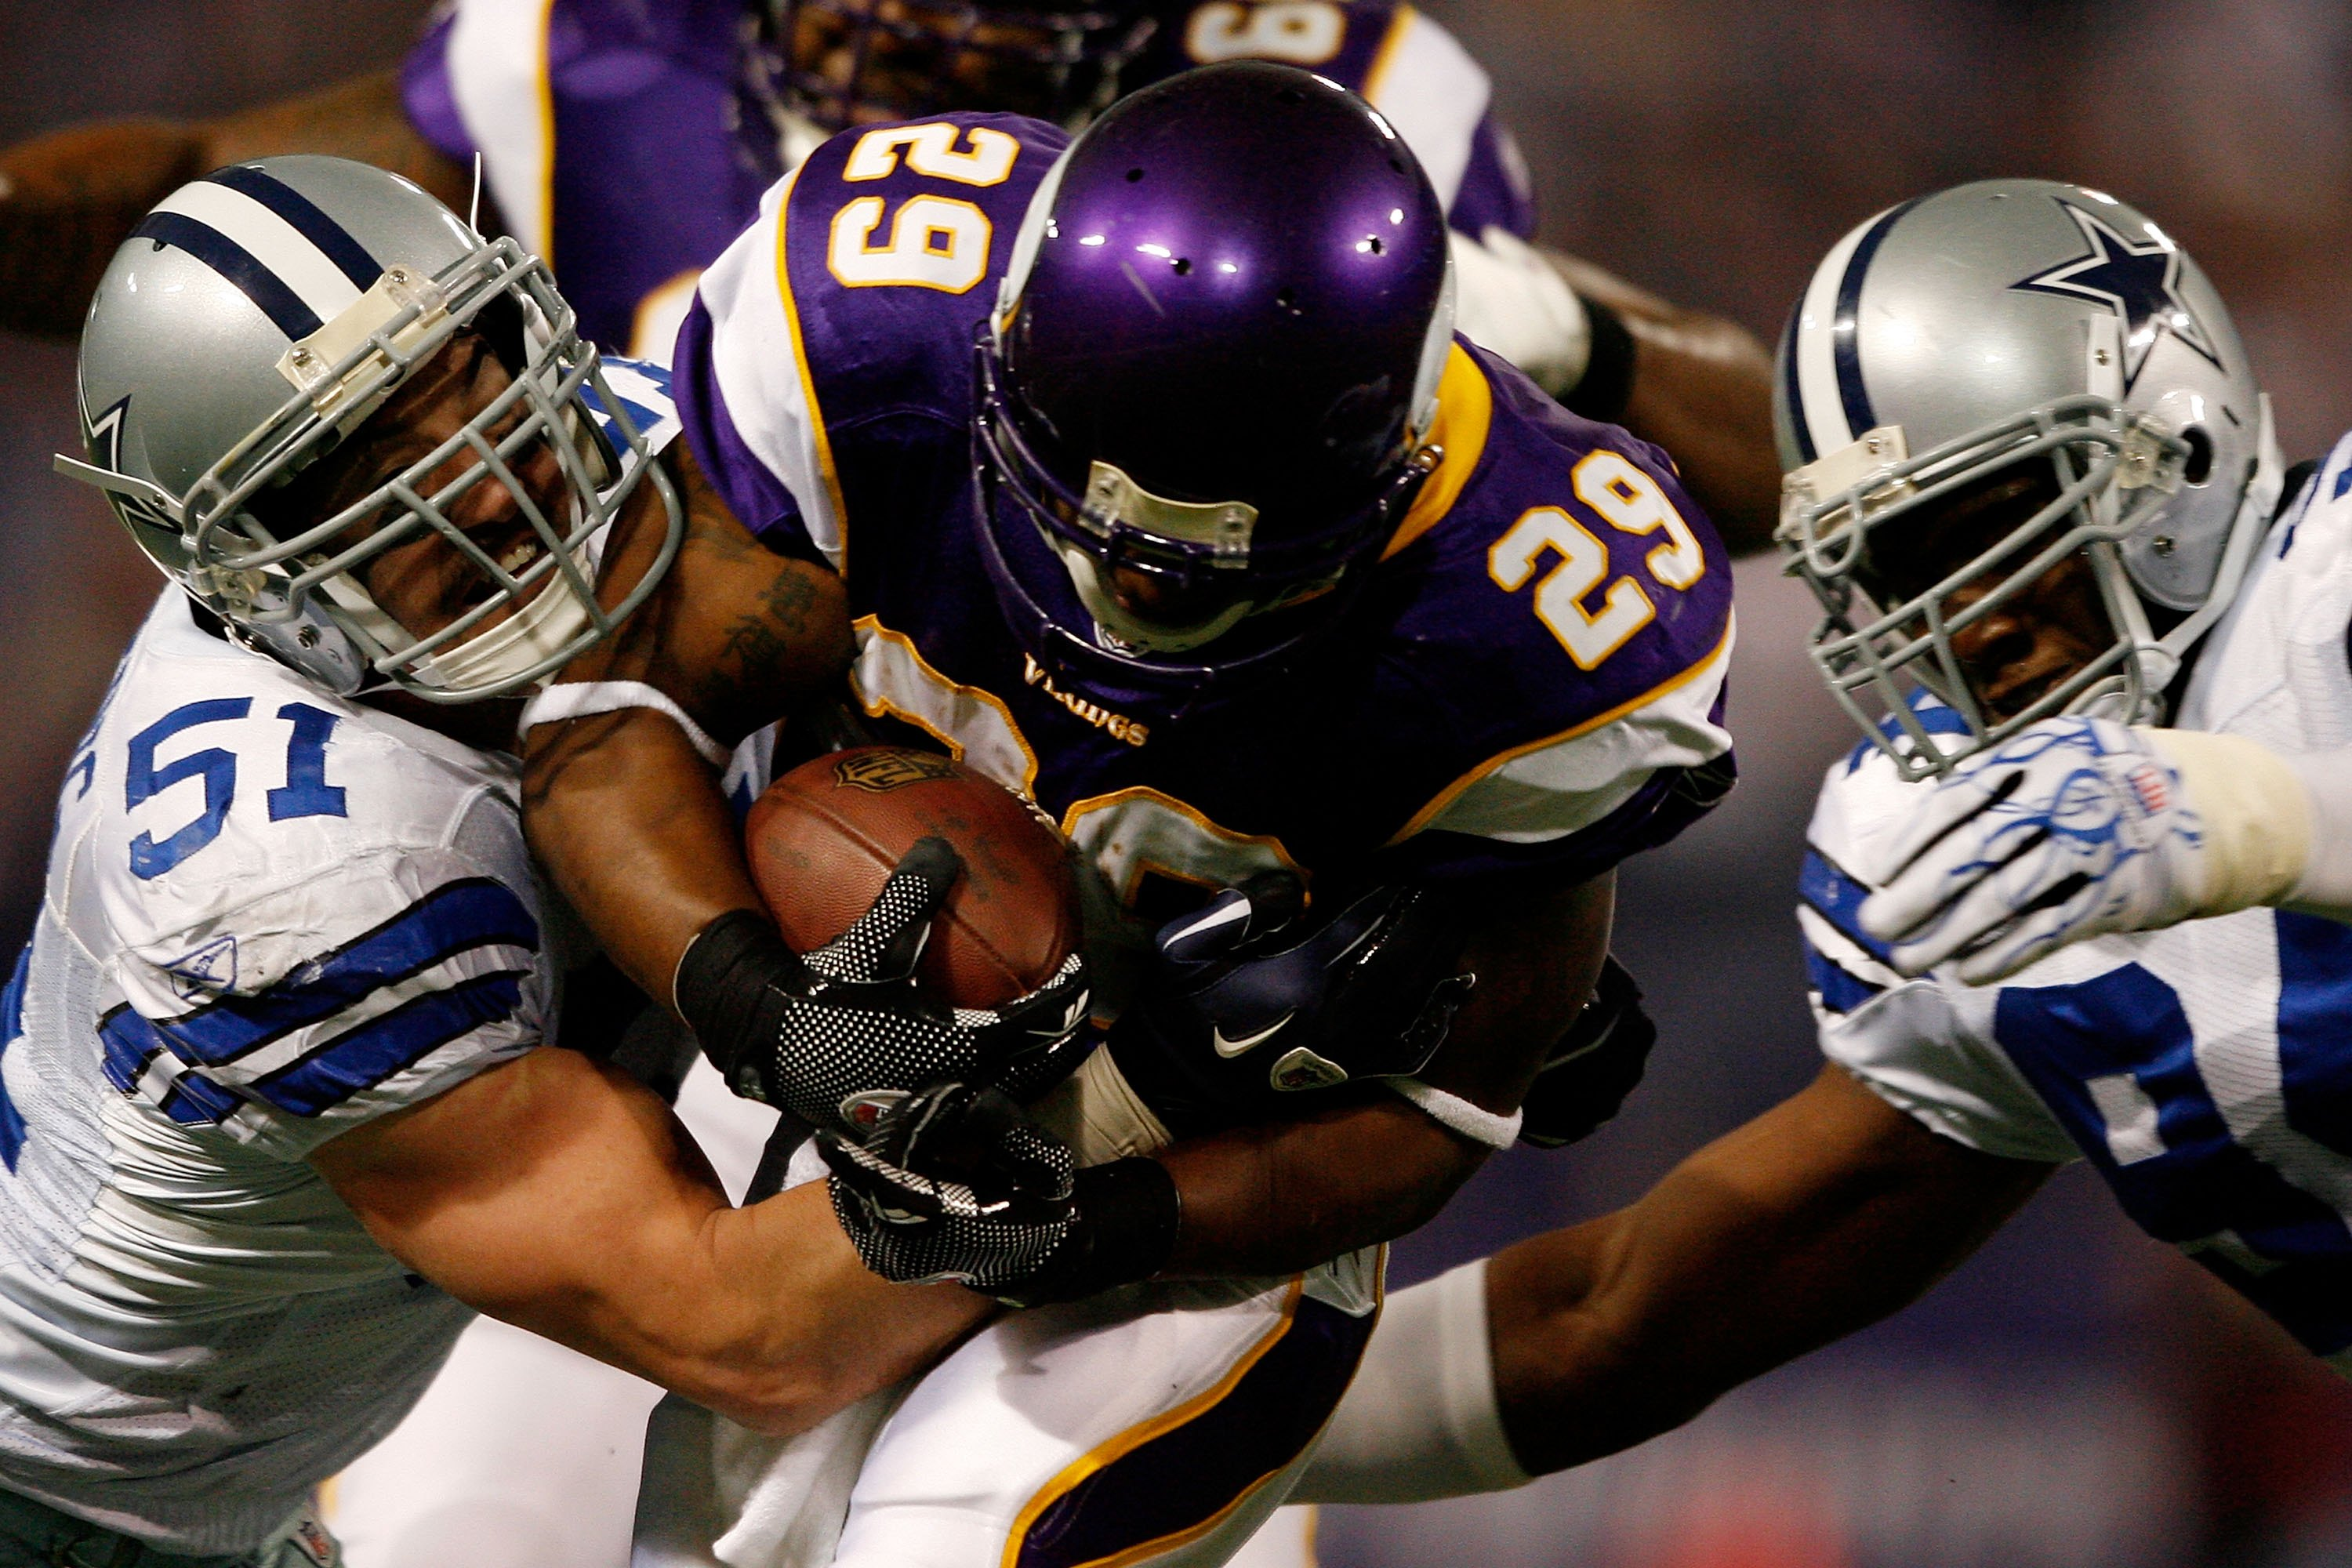 MINNEAPOLIS - JANUARY 17:  Running back Chester Taylor #29 of the Minnesota Vikings is tackled by Keith Brooking #51 of the Dallas Cowboys during the NFC Divisional Playoff Game at Hubert H. Humphrey Metrodome on January 17, 2010 in Minneapolis, Minnesota